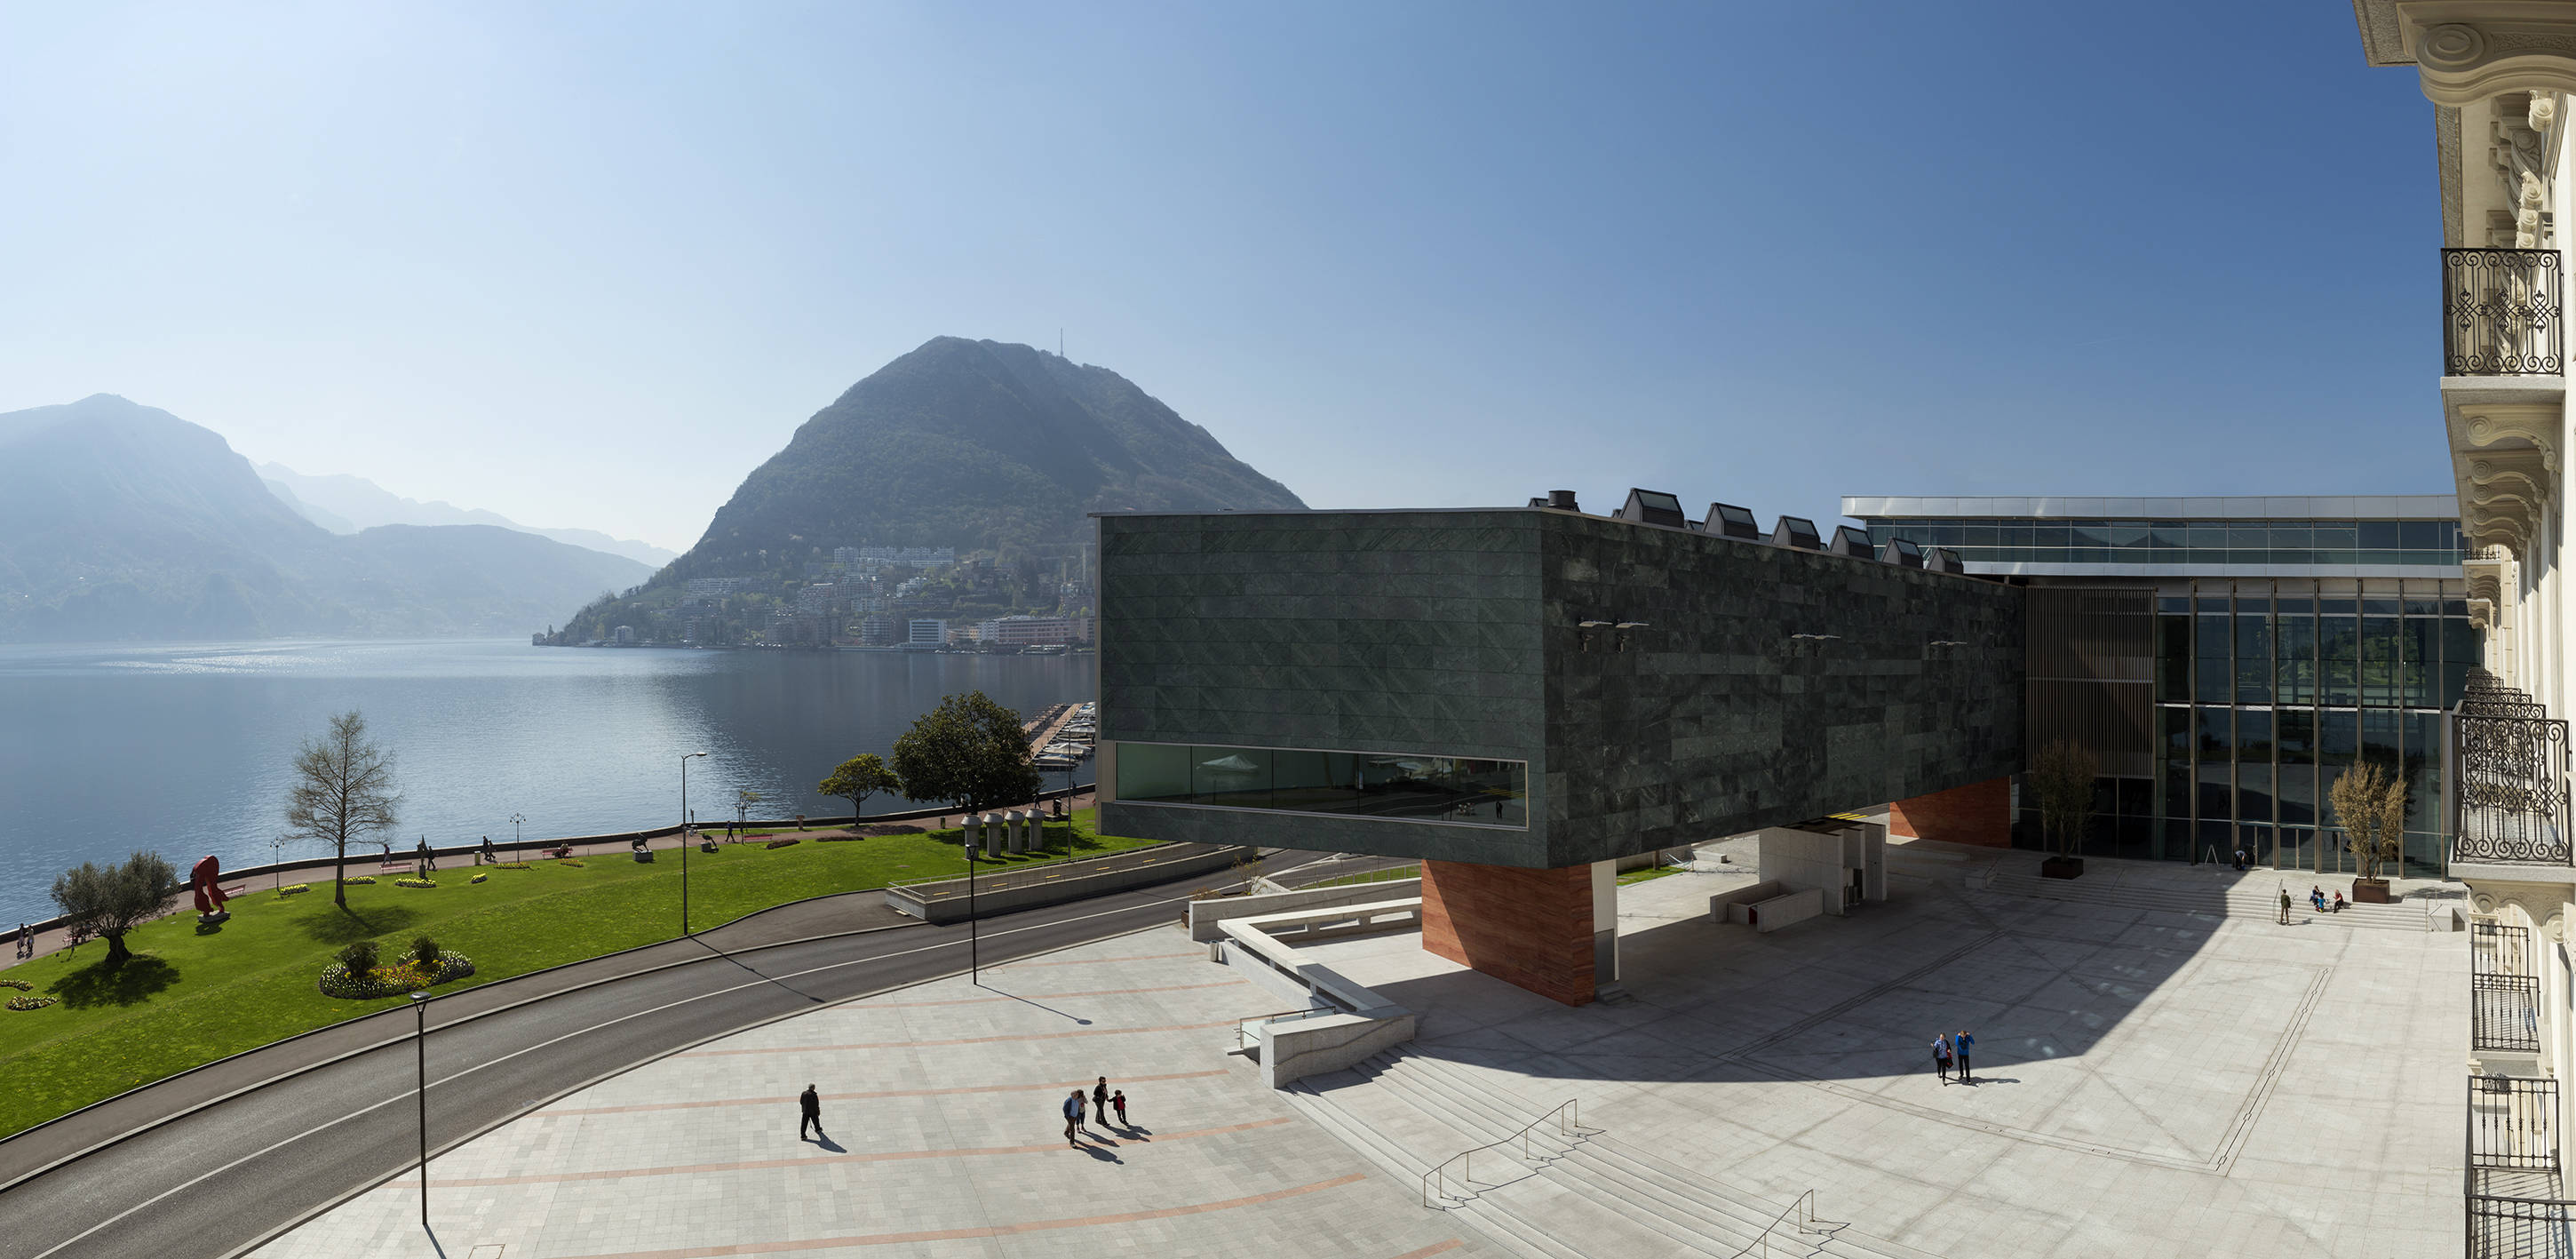 TICINO - L'arte e la natura: il LAC affacciato sul Lago di Lugano e il Monte San Salvatore.